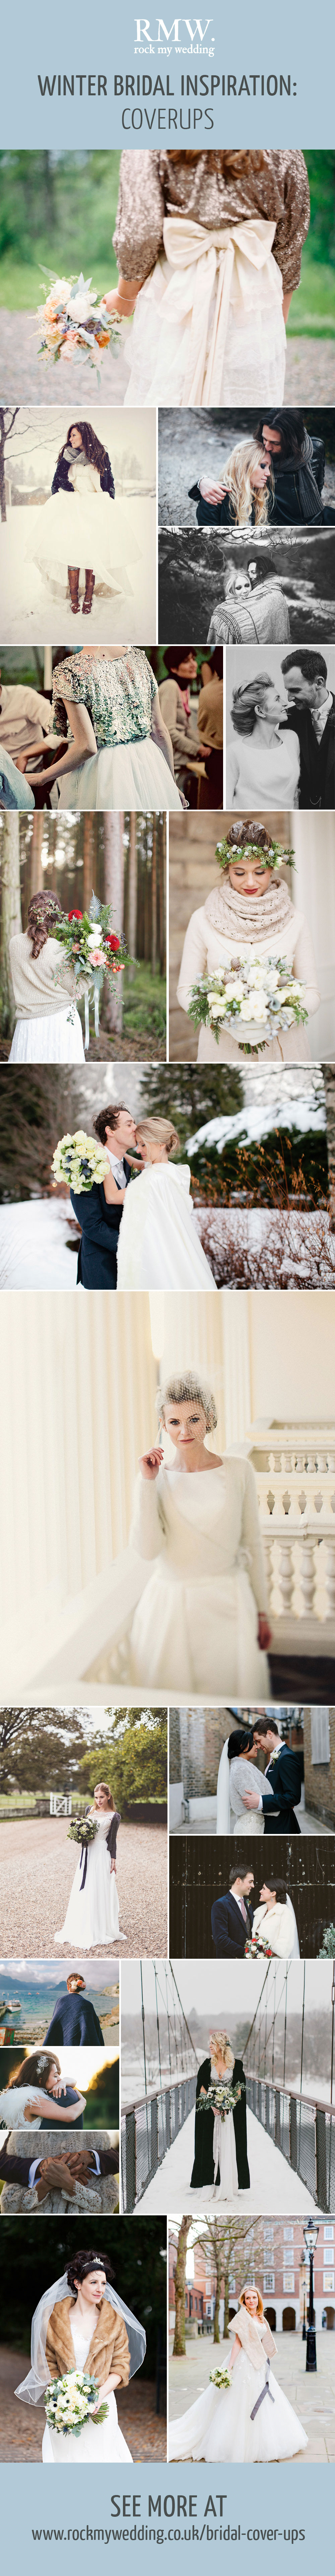 Bridal Cover Up Inspiration